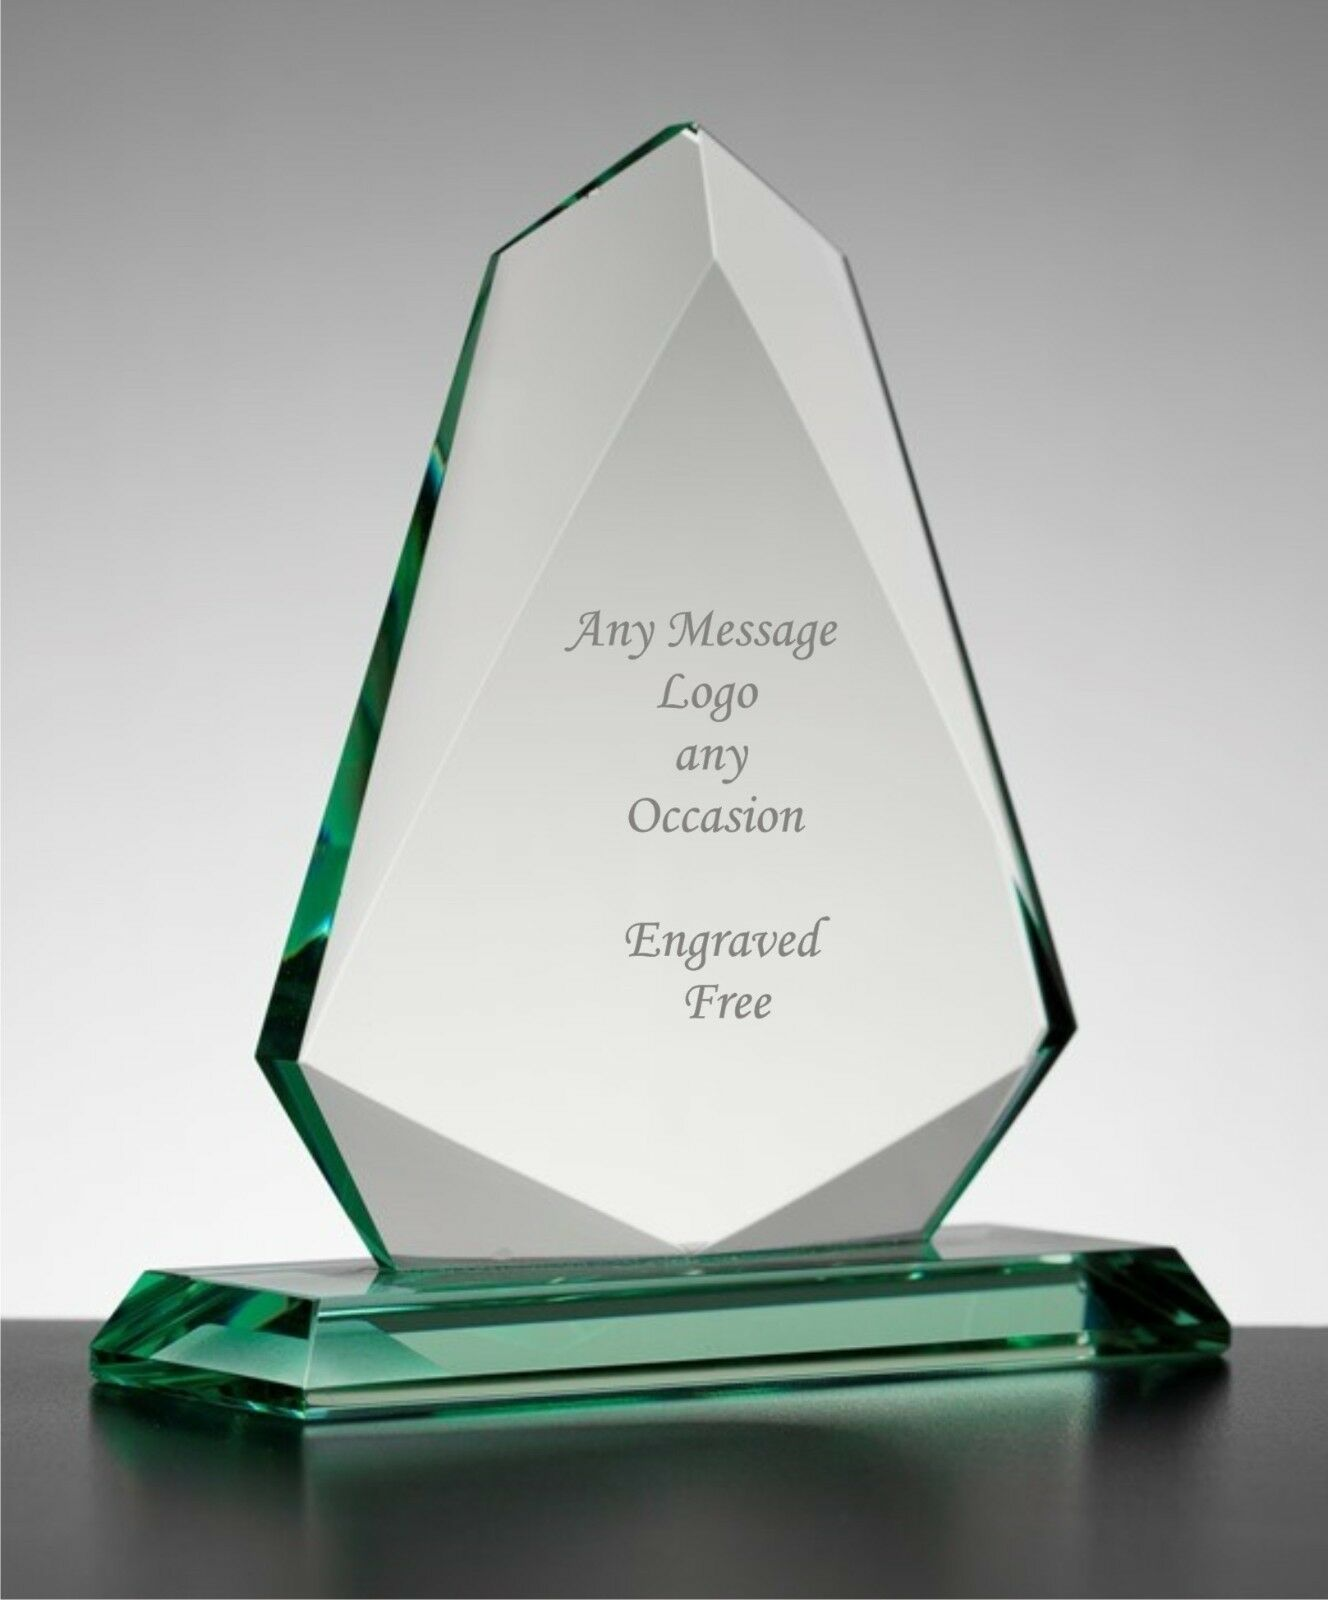 Personalised Engraved Arrow Jade Glass  Award Trophy,  Corporate Gifts,